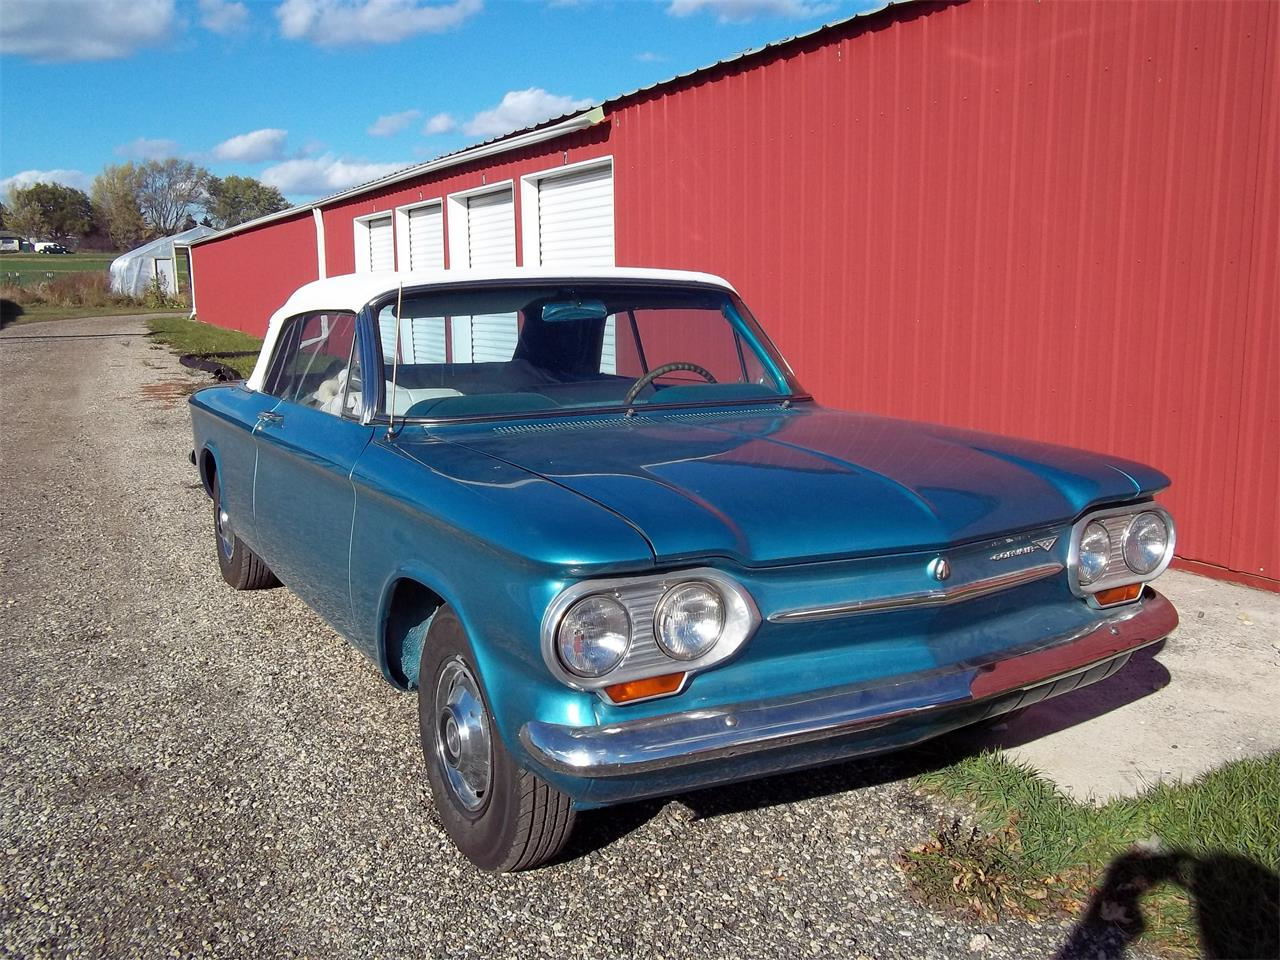 Large Picture of 1963 Chevrolet Corvair Monza located in Wisconsin - $8,500.00 Offered by a Private Seller - L2P4